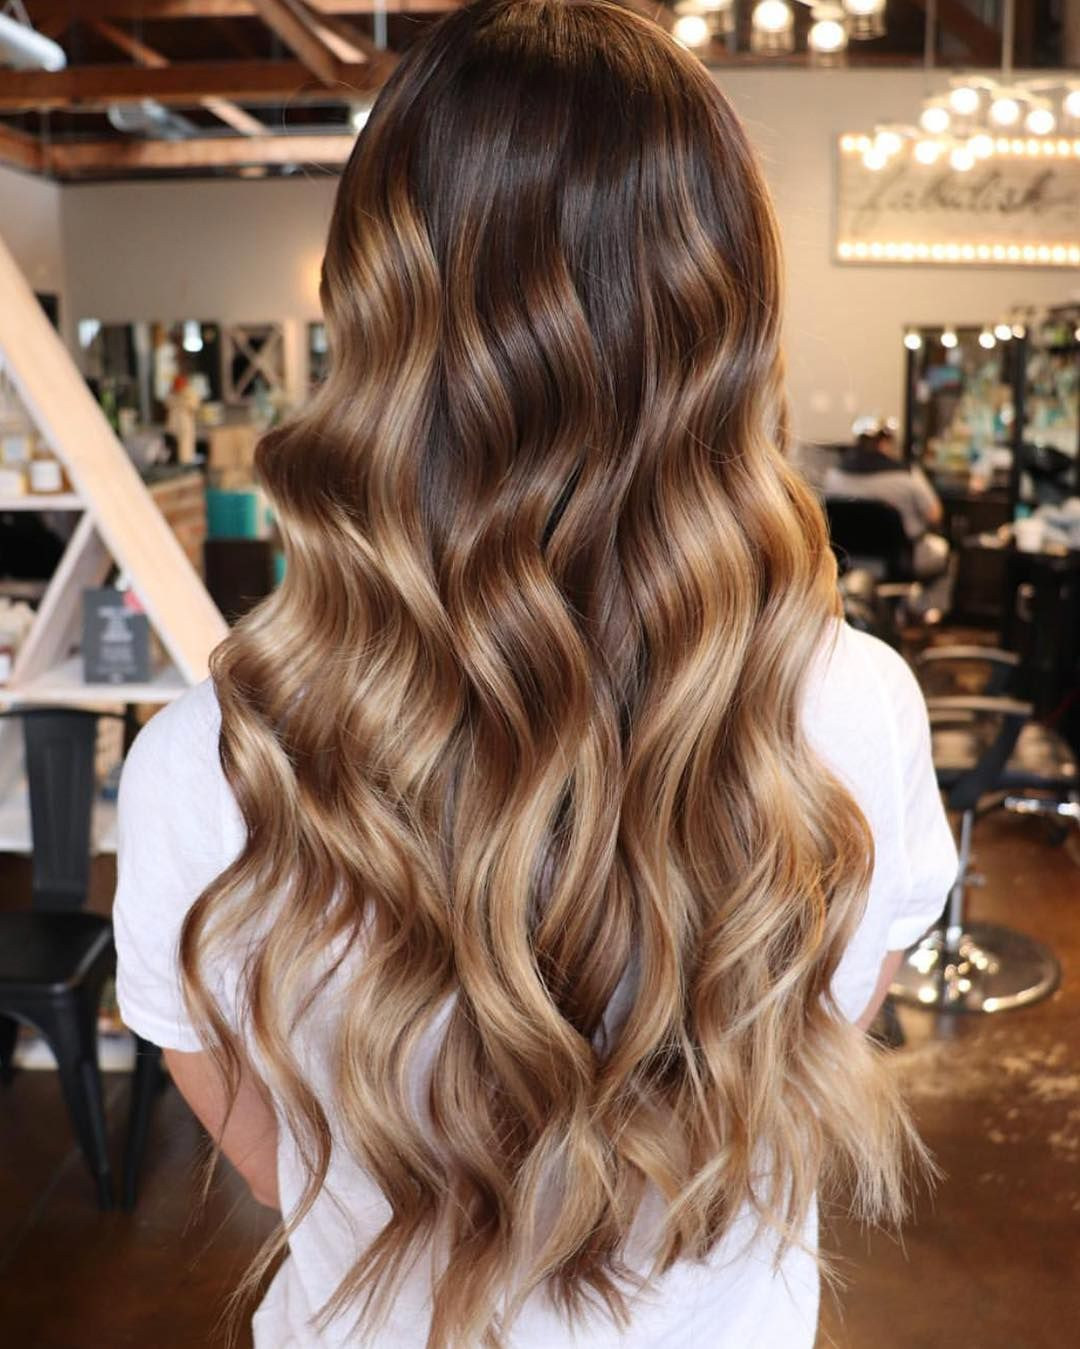 """✨BALAYAGE & BEAUTIFUL HAIR (@bestofbalayage) • Instagram photos and videos<p><a href=""""http://www.homeinteriordesign.org/2018/02/short-guide-to-interior-decoration.html"""">Short guide to interior decoration</a></p>"""